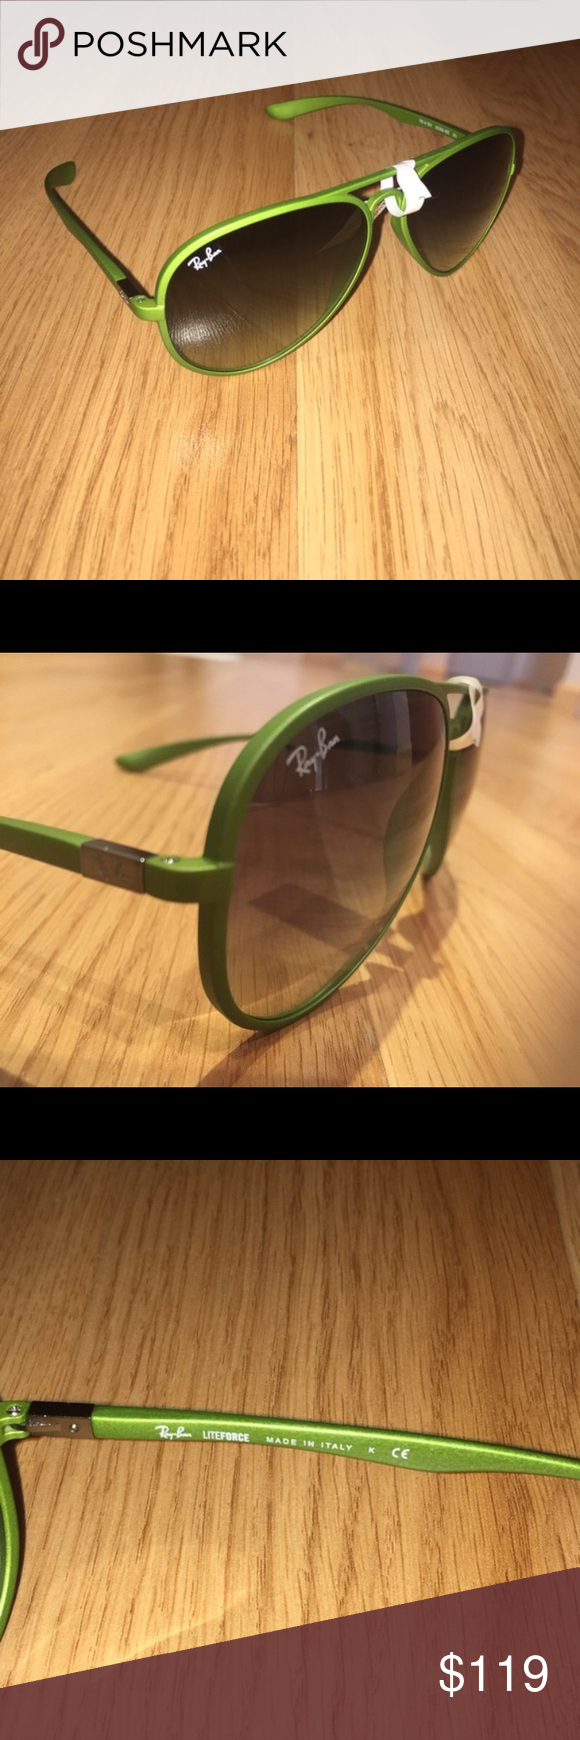 71090c266cfaa NWT Ray Ban Lite force aviators Comes with case Ray-Ban Accessories  Sunglasses